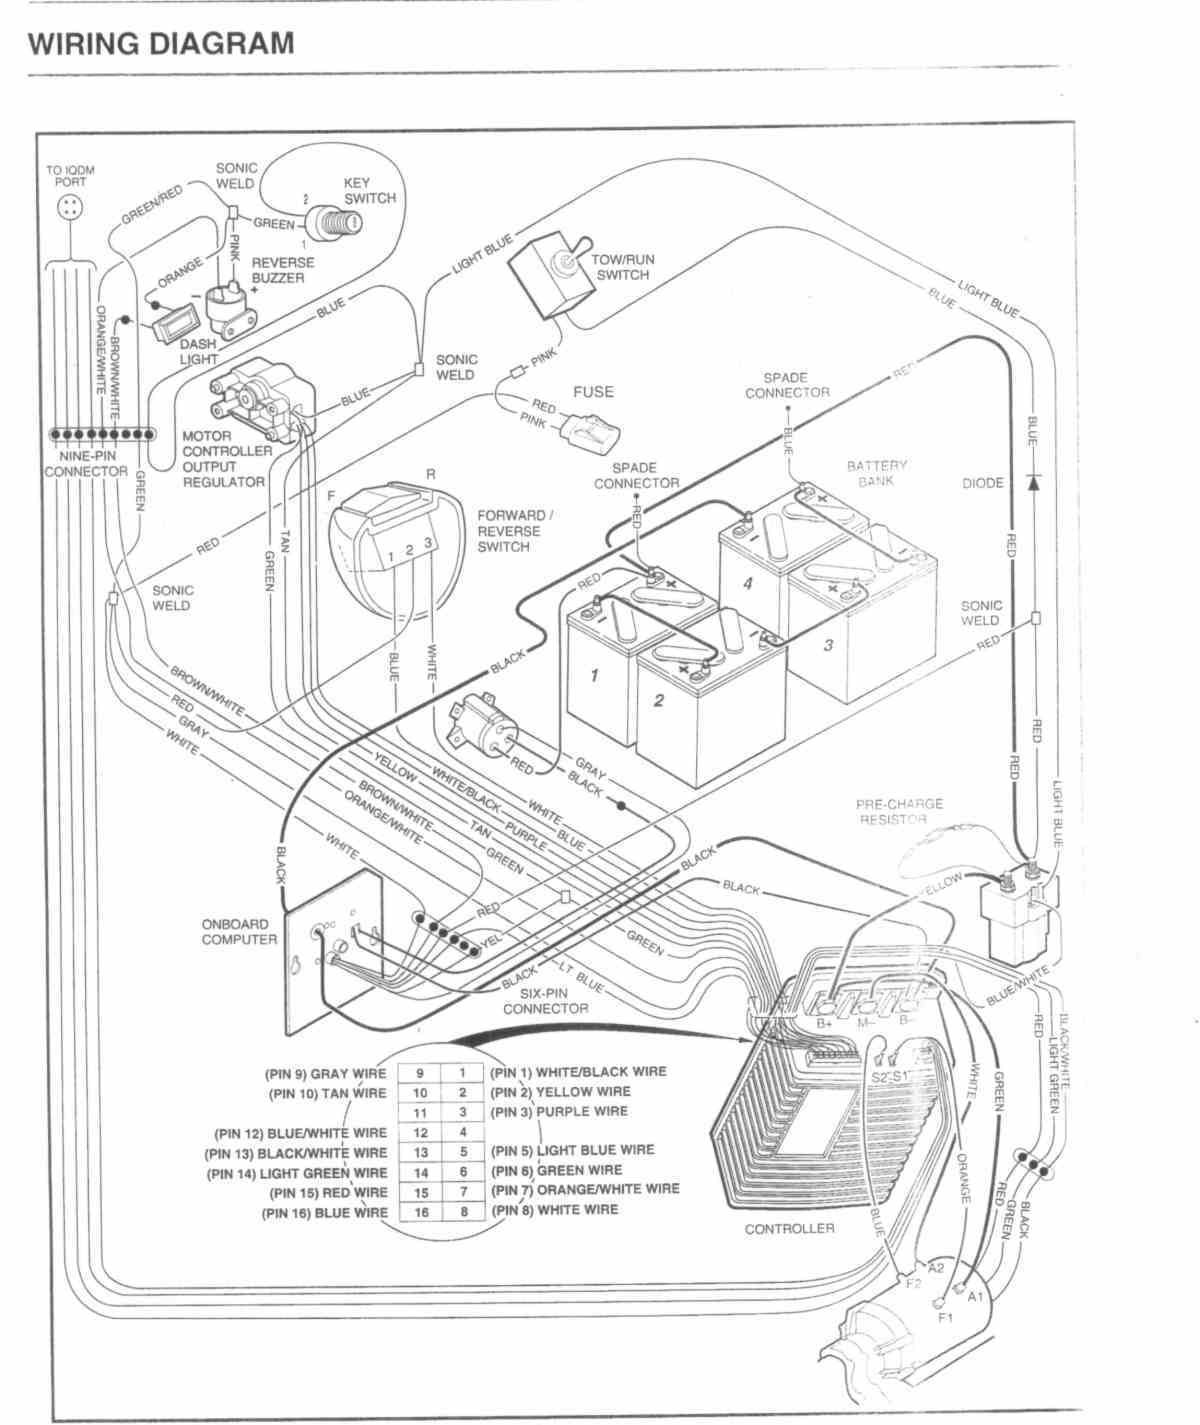 1994 36v club car wiring diagram how to hook up 24 volt battery 1986